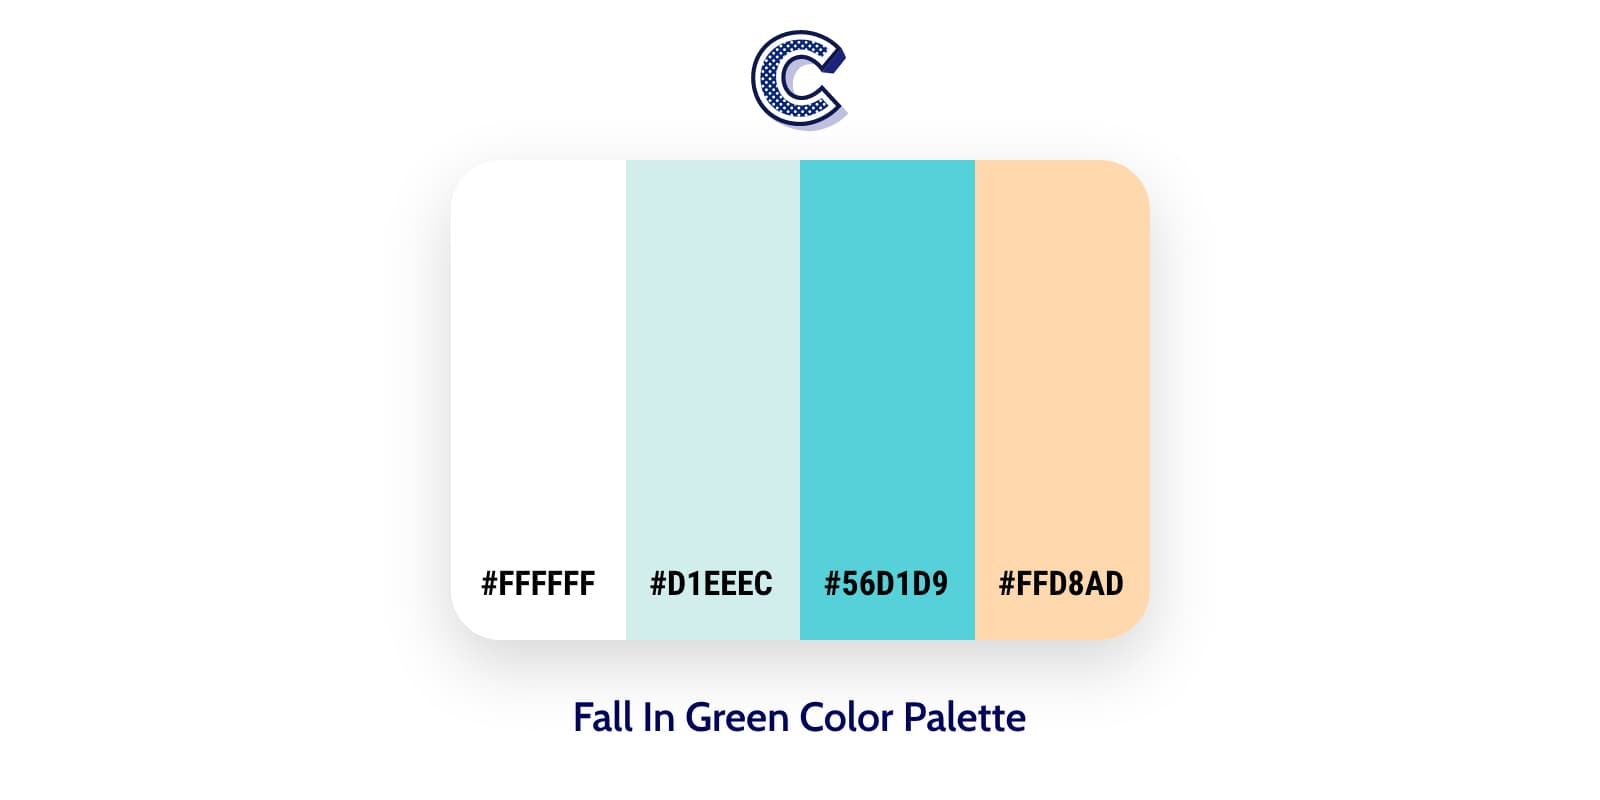 the featured image of fall in green color palette